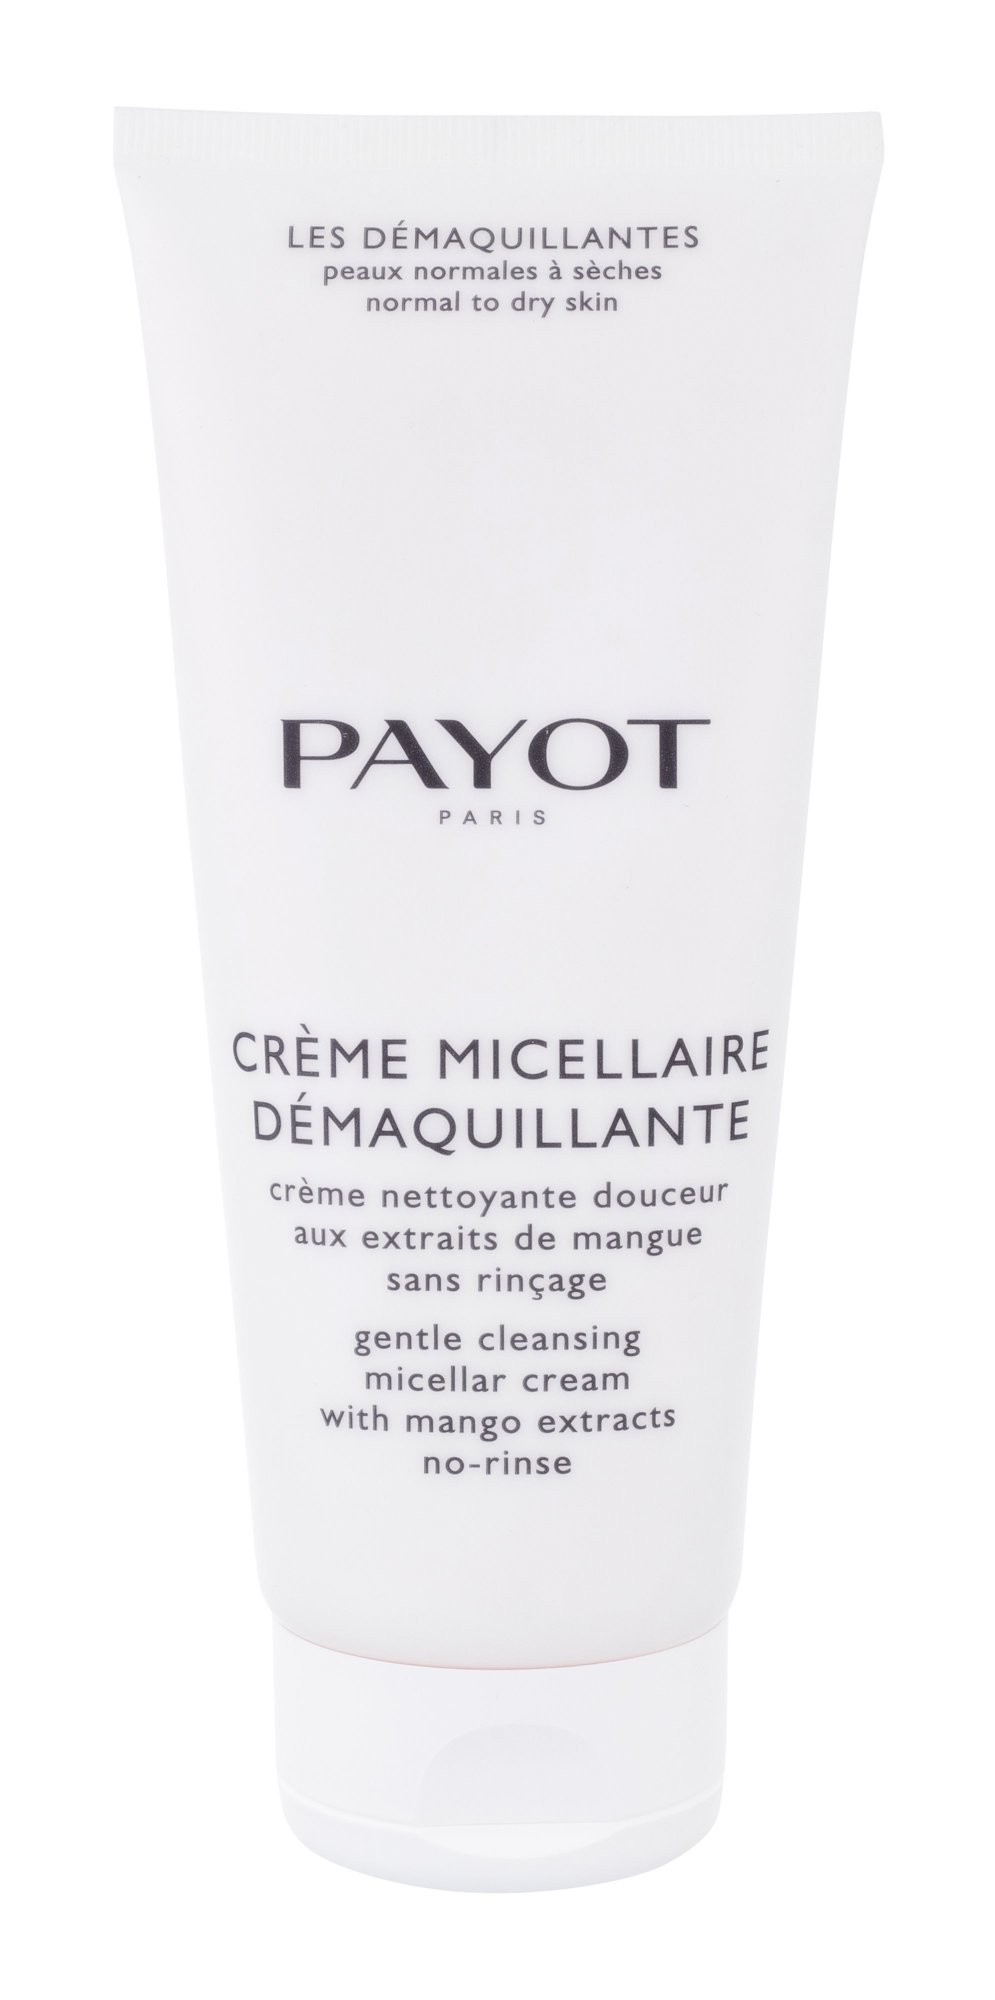 PAYOT Les Démaquillantes Cosmetic 200ml  Gentle Cleansing Micellar Cream